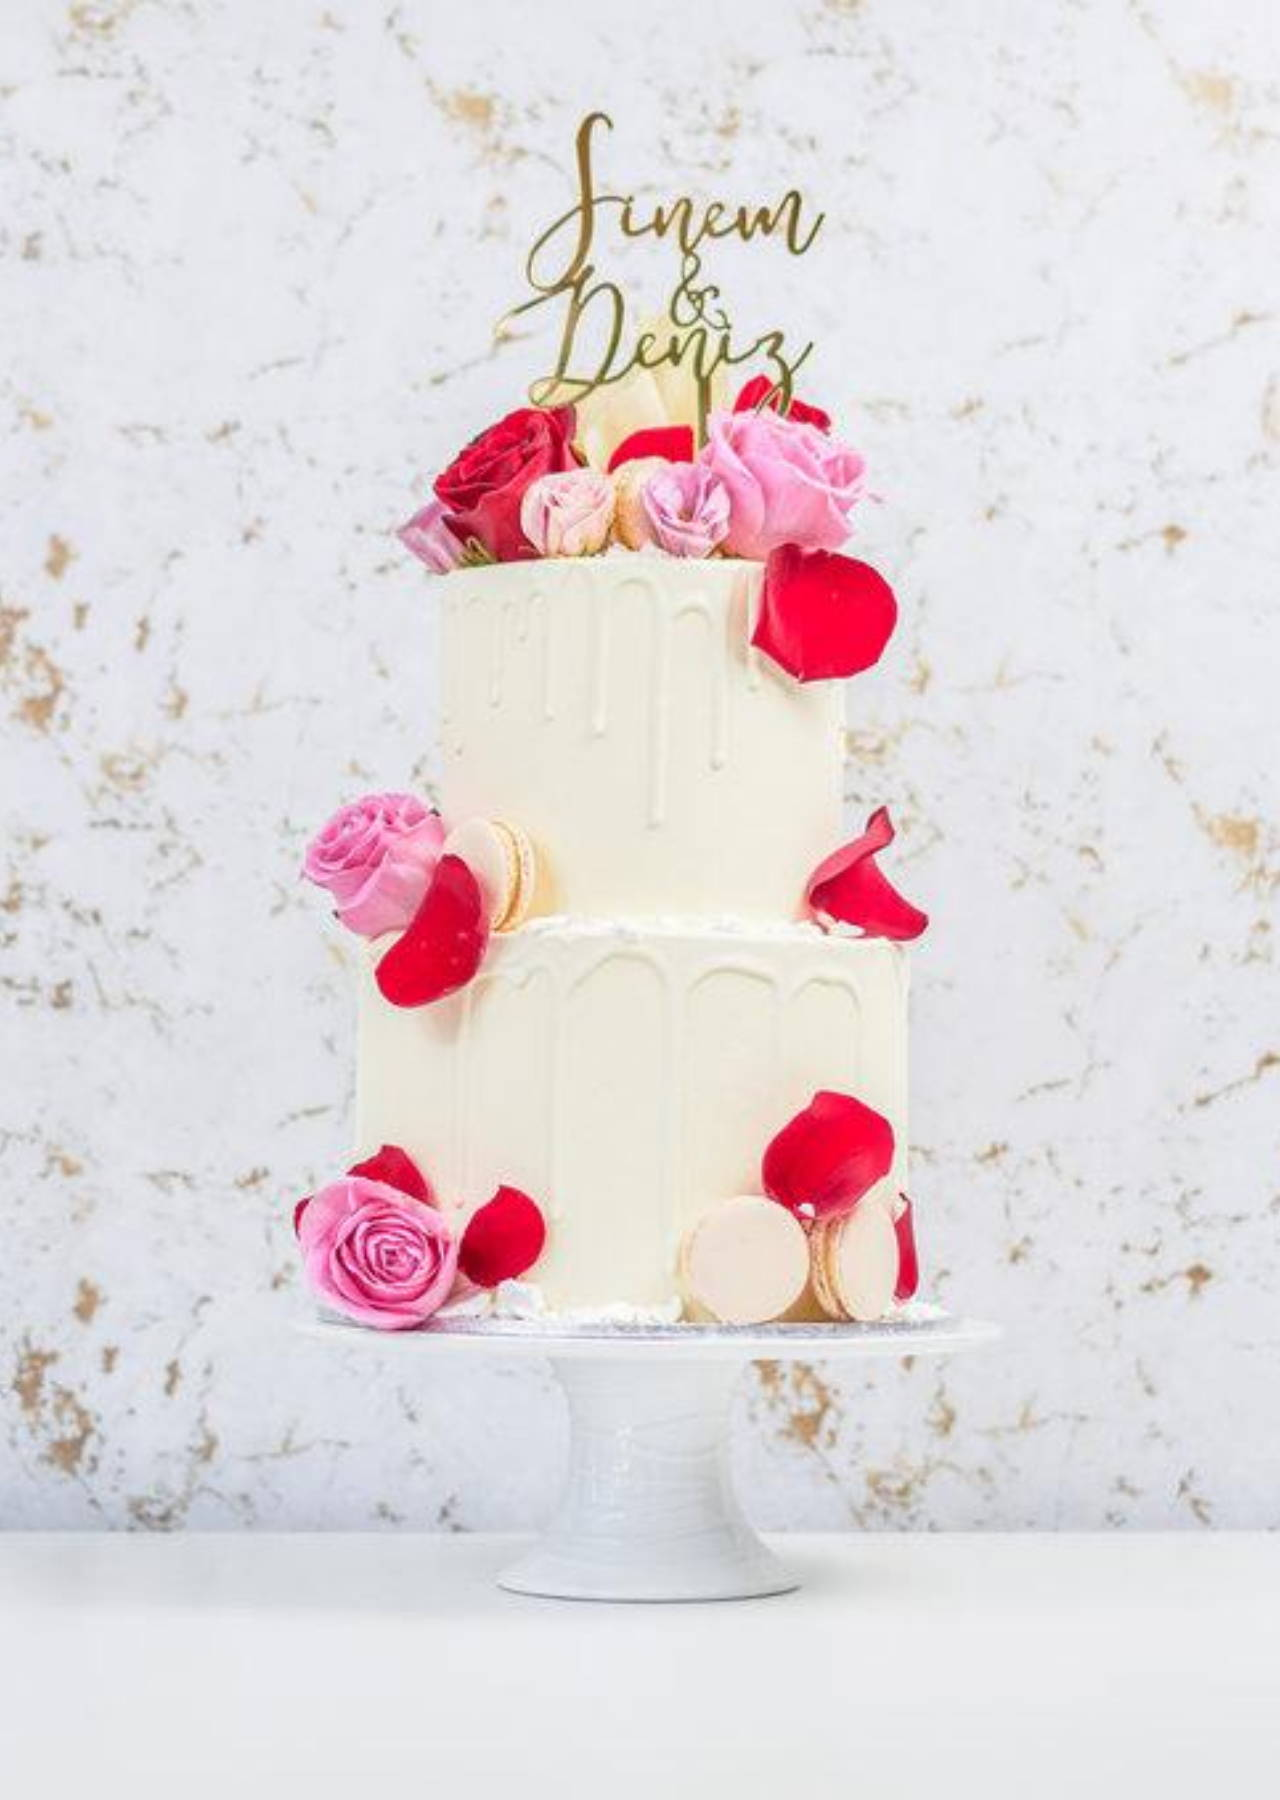 Two Tier Cake with White Chocolate Drip and Florals